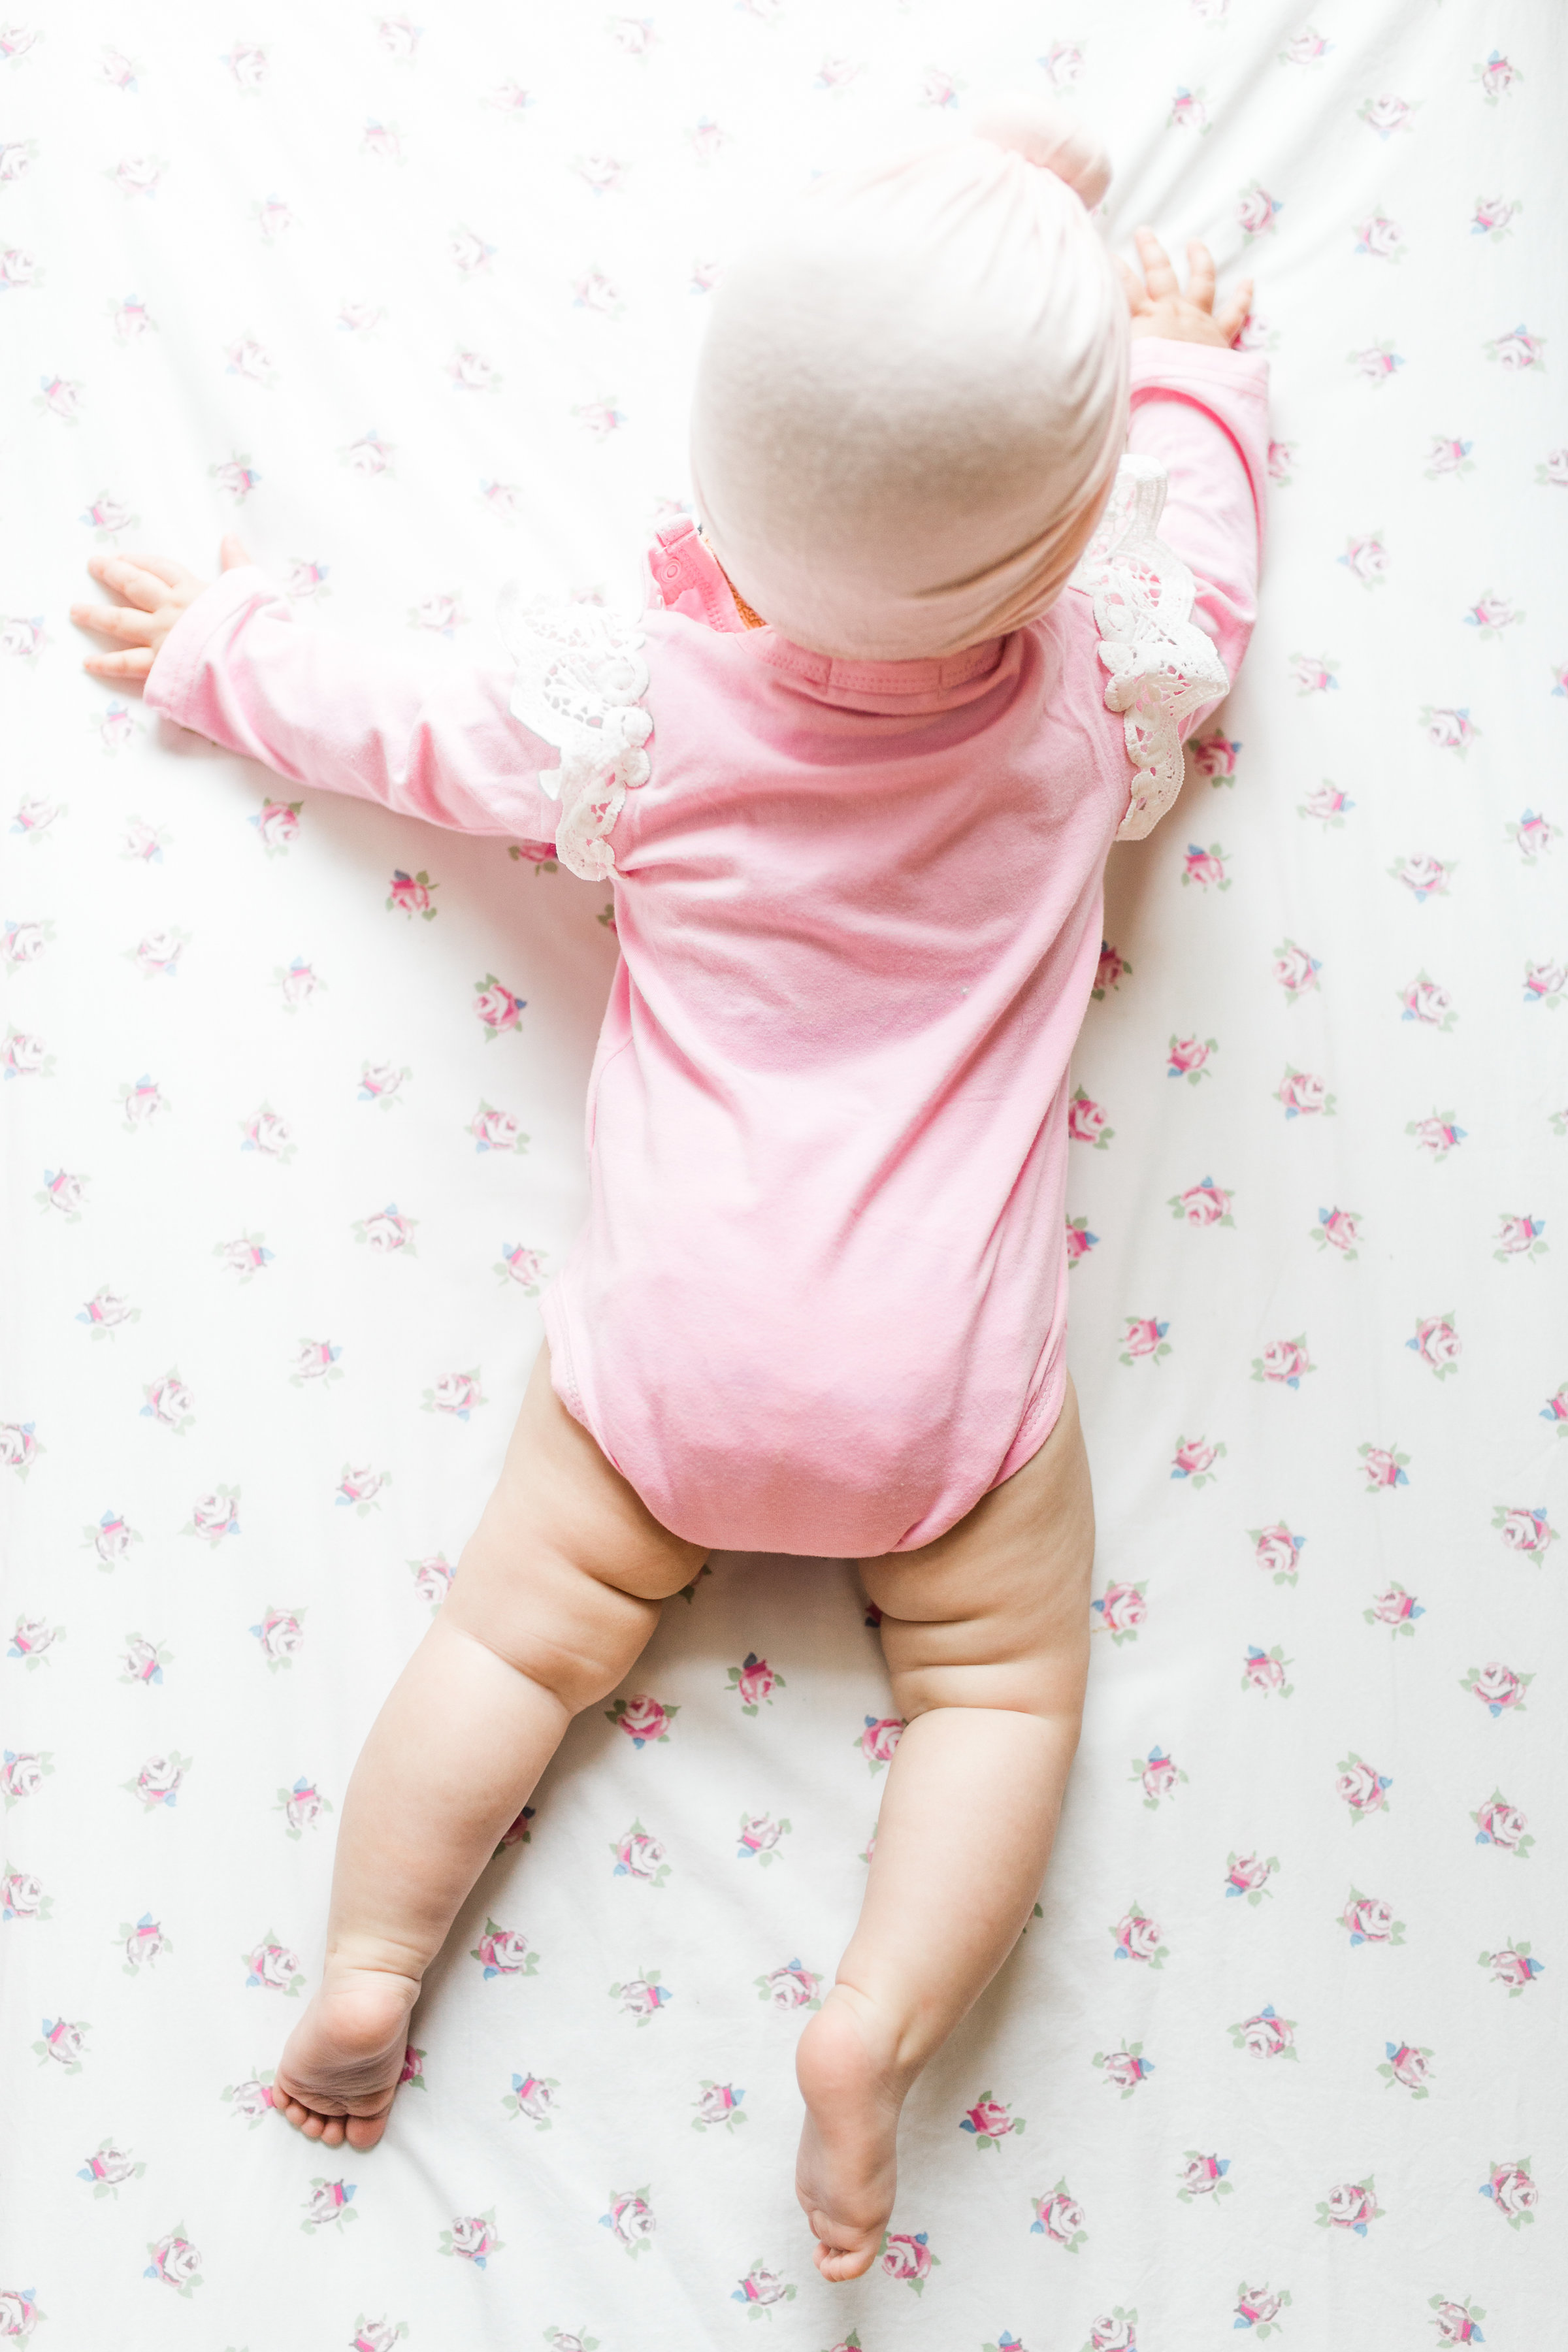 Here's how you can teach your baby to sleep, complete with the ultimate sleep schedule cheat sheet for babies from birth through 12 months, a handy chart outlining how much sleep your baby really needs at every age, and our best tips for getting baby to sleep through the night. Happy sleeping! Click through for the details. #babysleep #sleeptraining #newbornsleep #newborn #baby #sleepschedule #babysleepschedule | glitterinc.com | @glitterinc